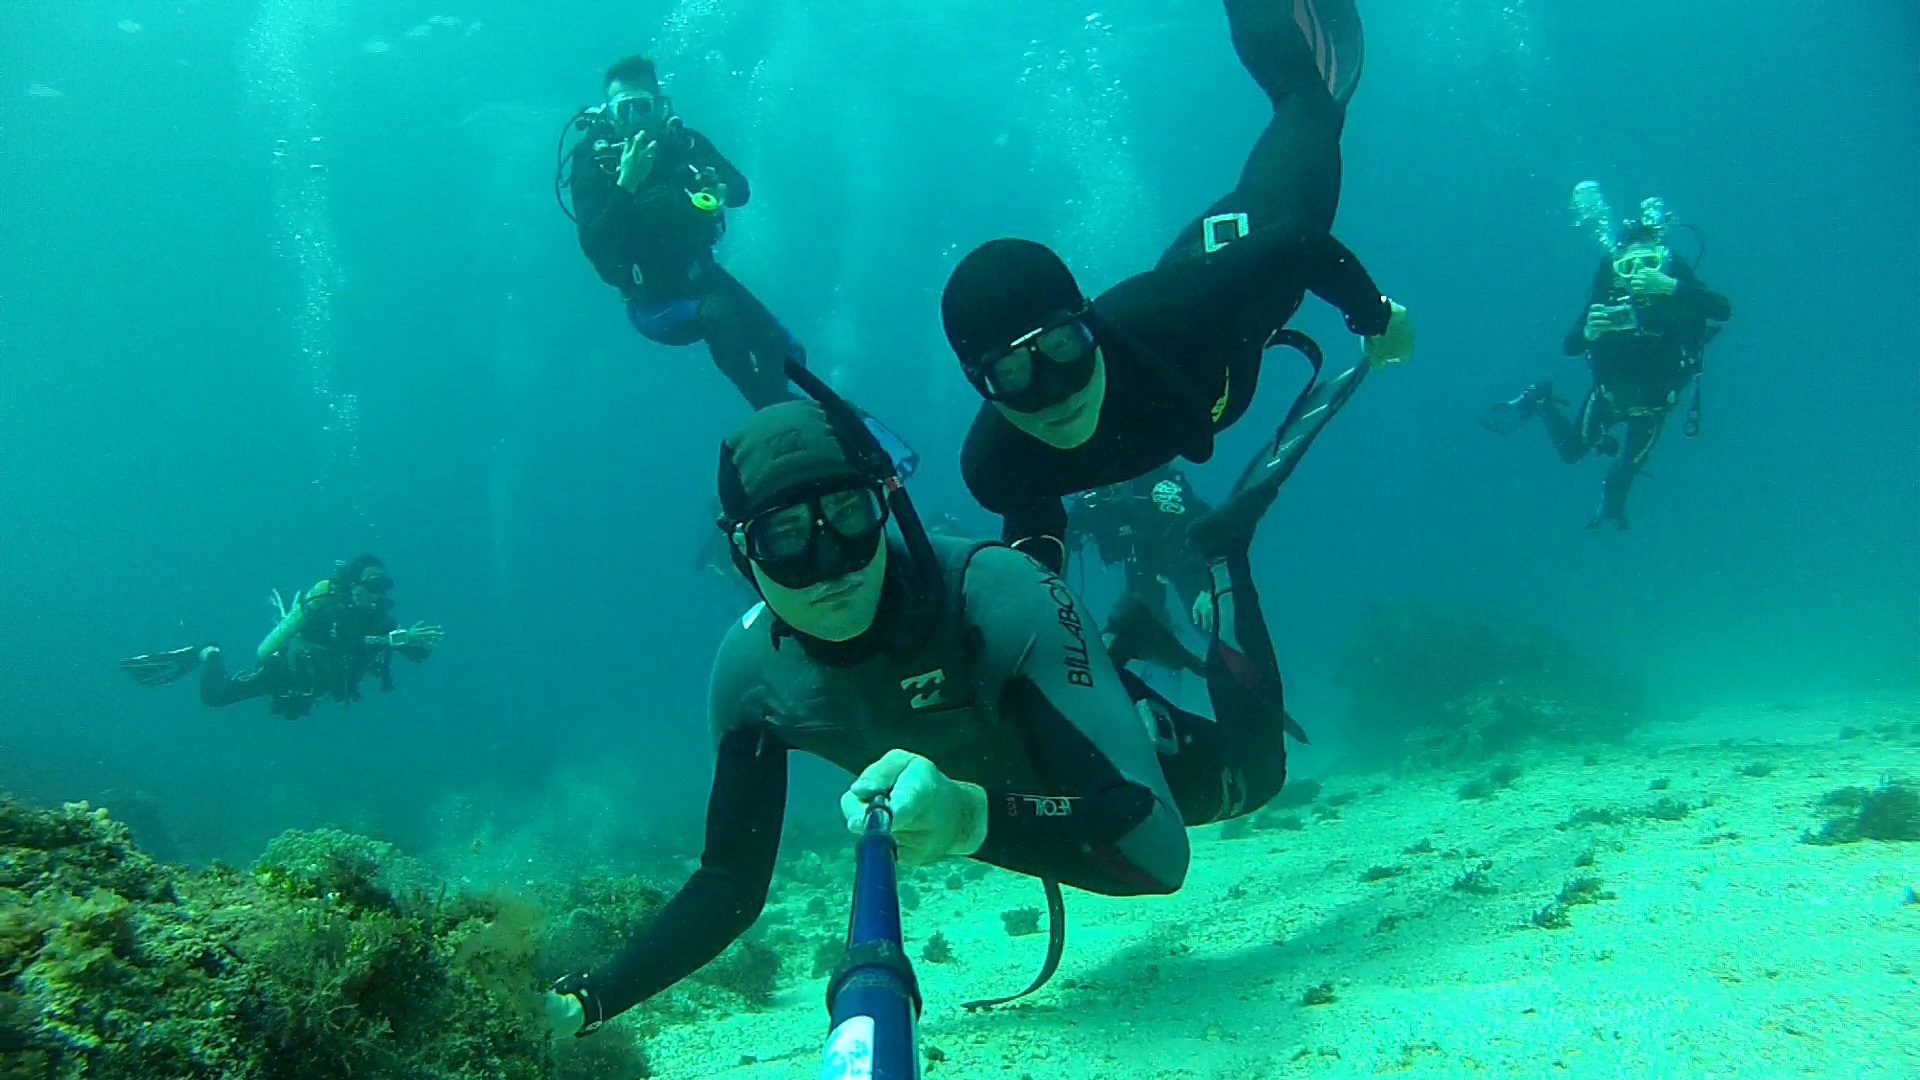 Dean Fredericks his freediver buddy and a group of curious 1920x1080